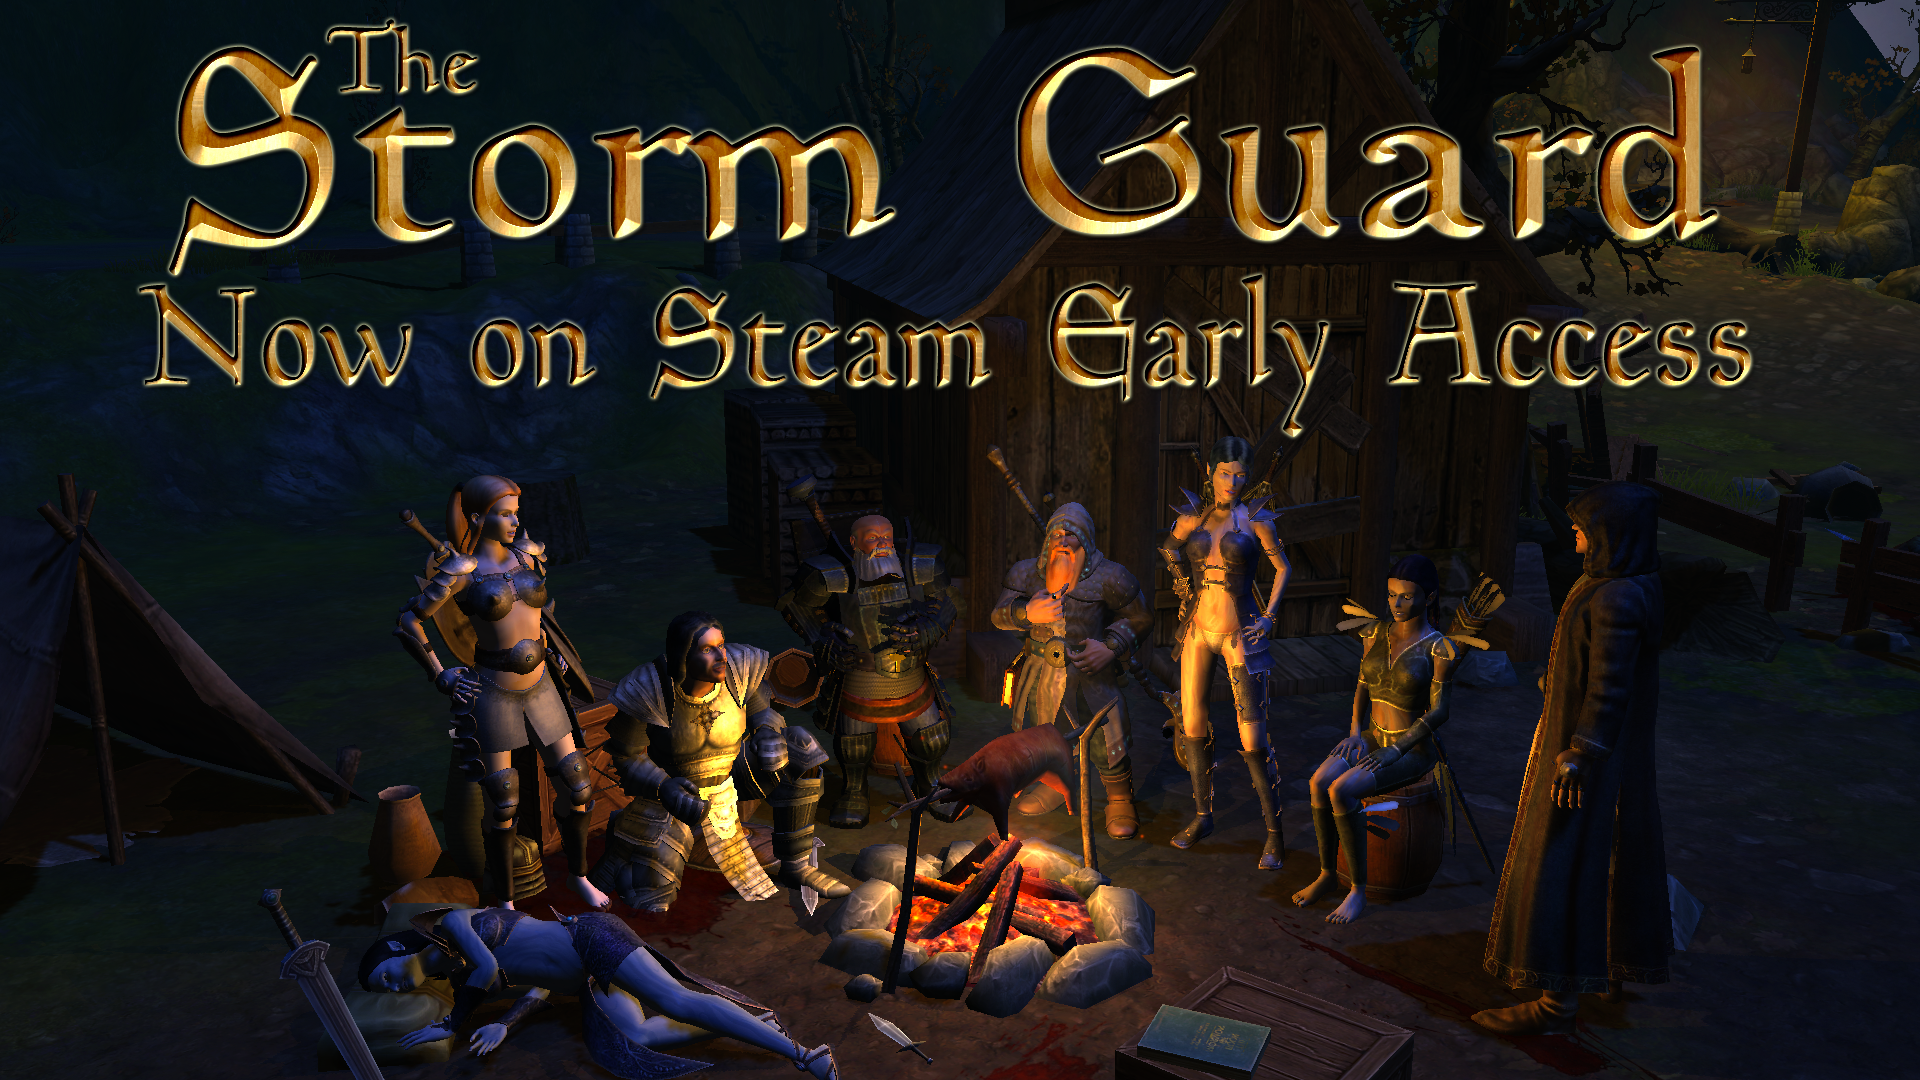 The Storm Guard EarlyAccess